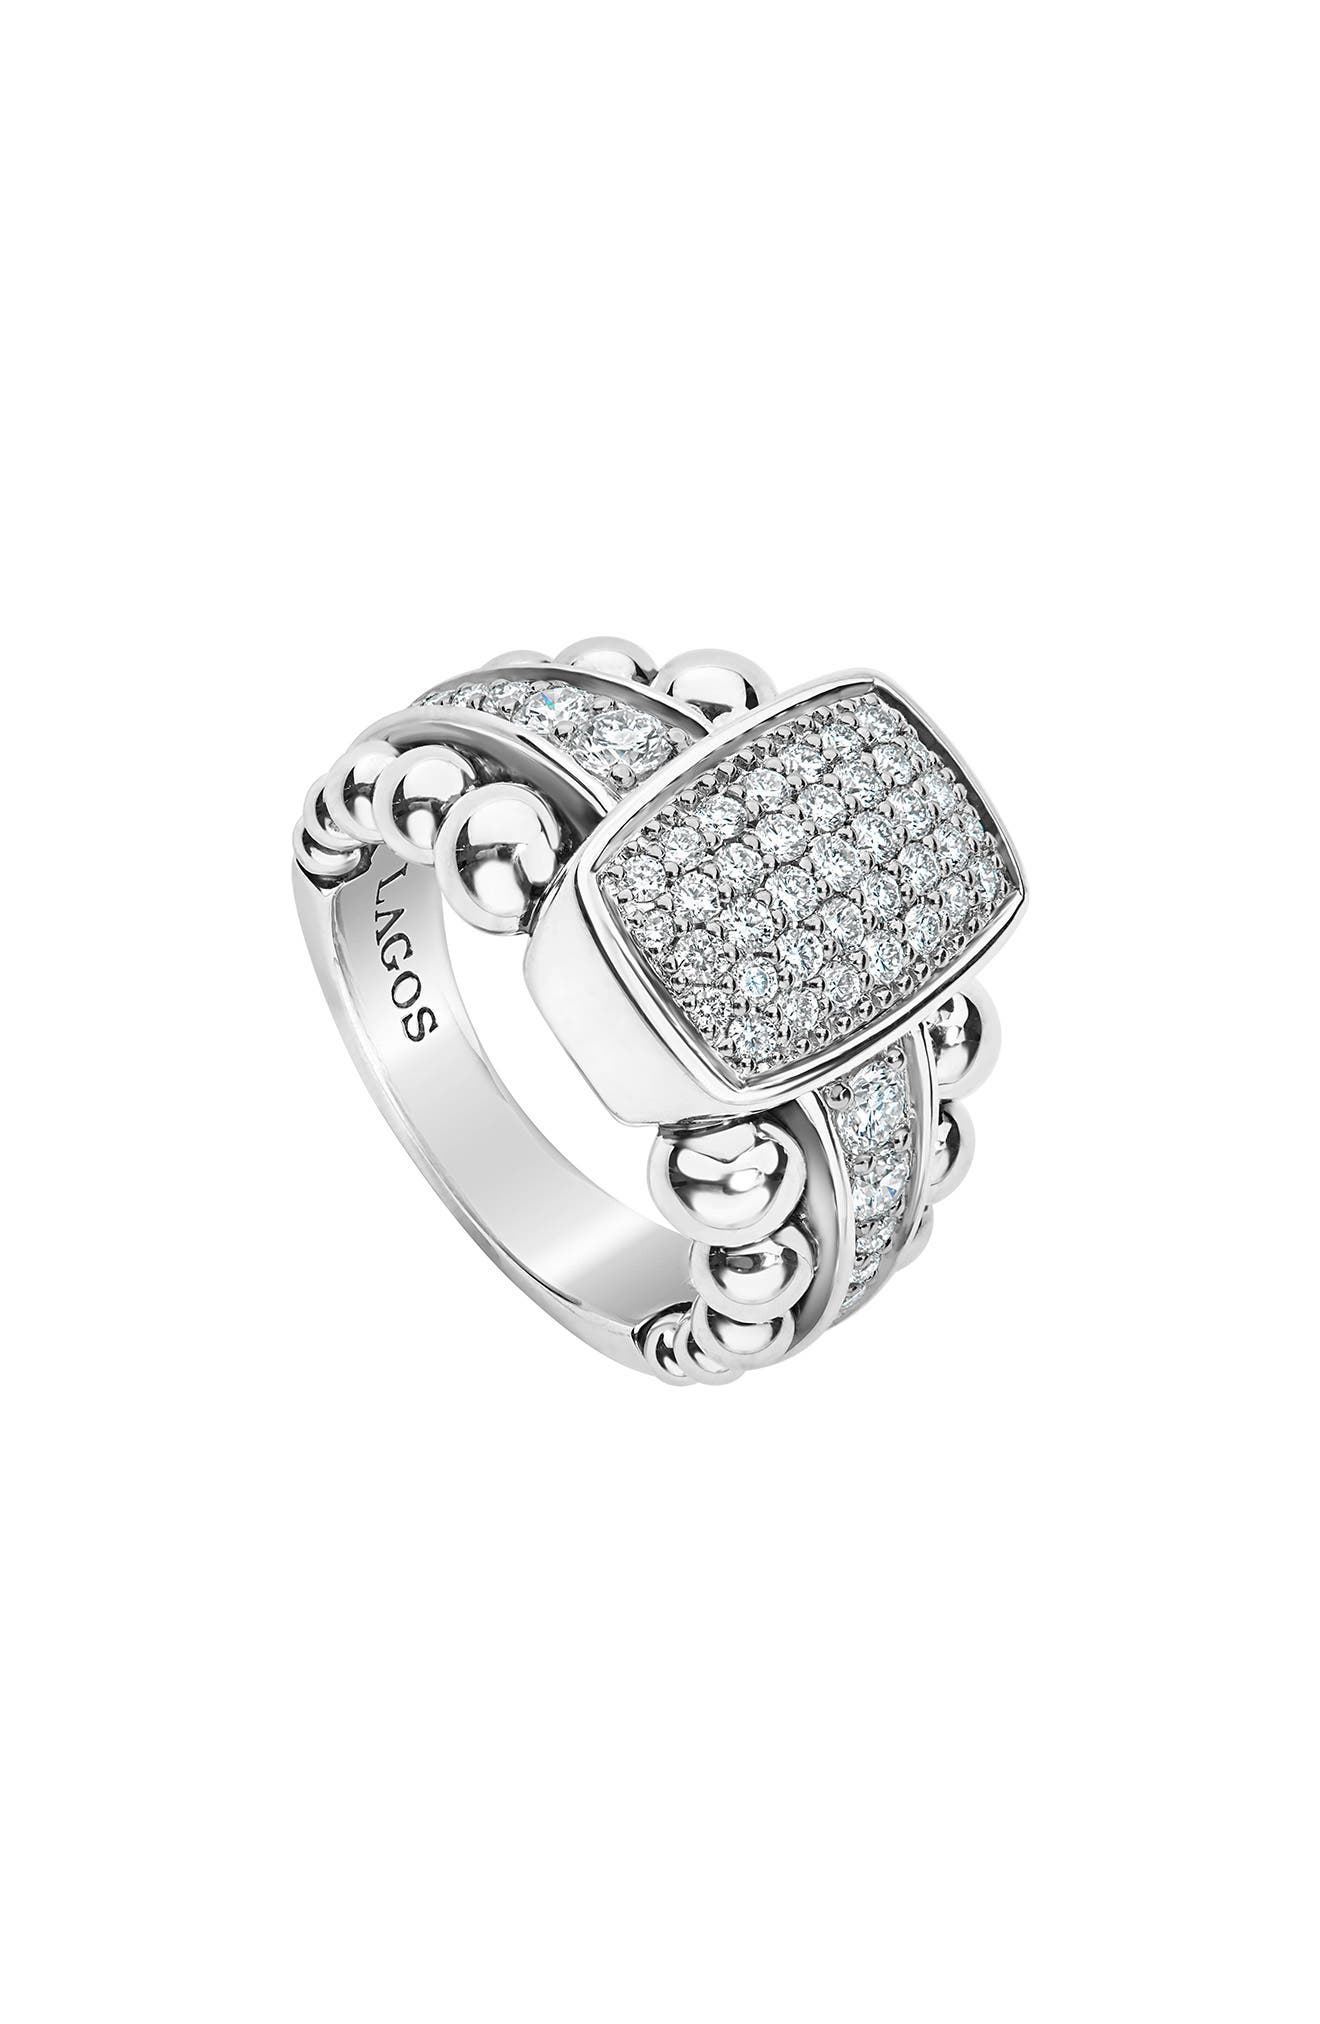 LAOGS Caviar Spark Vertical Statement Ring,                         Main,                         color, SILVER/ DIAMOND